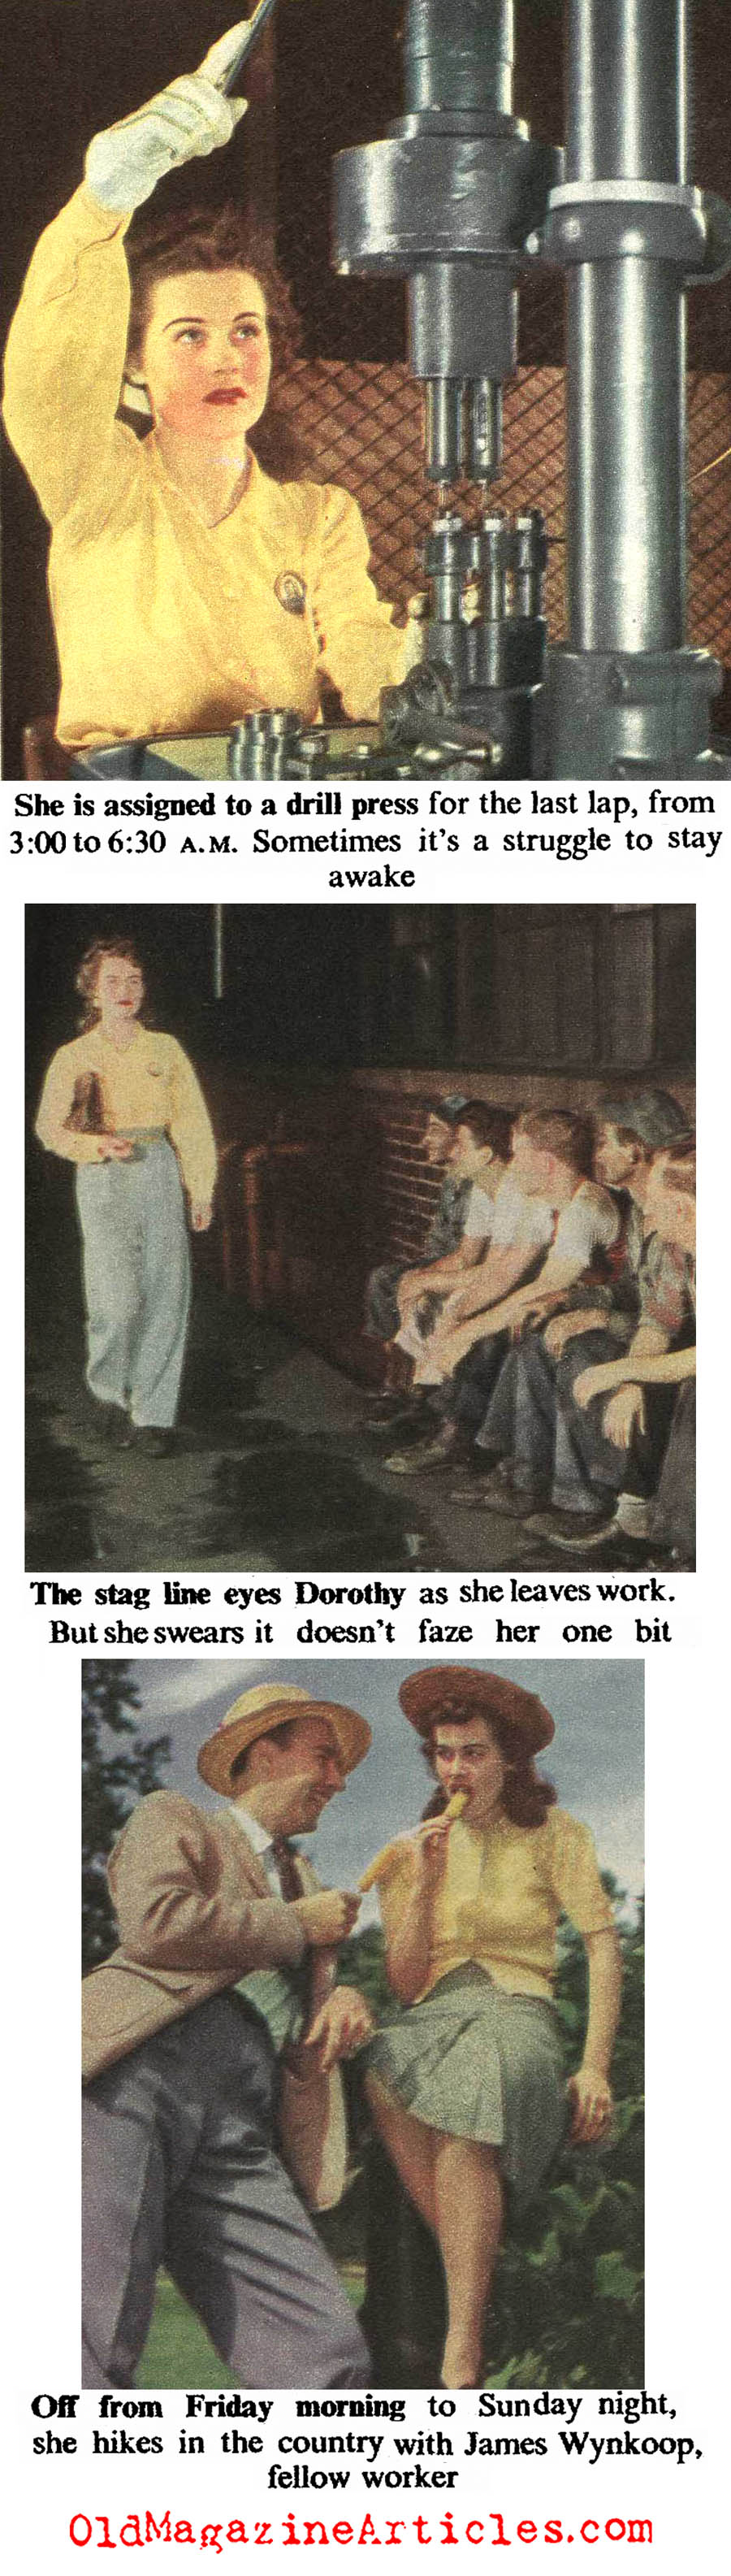 She Worked The Graveyard Shift (The American Magazine, 1943)